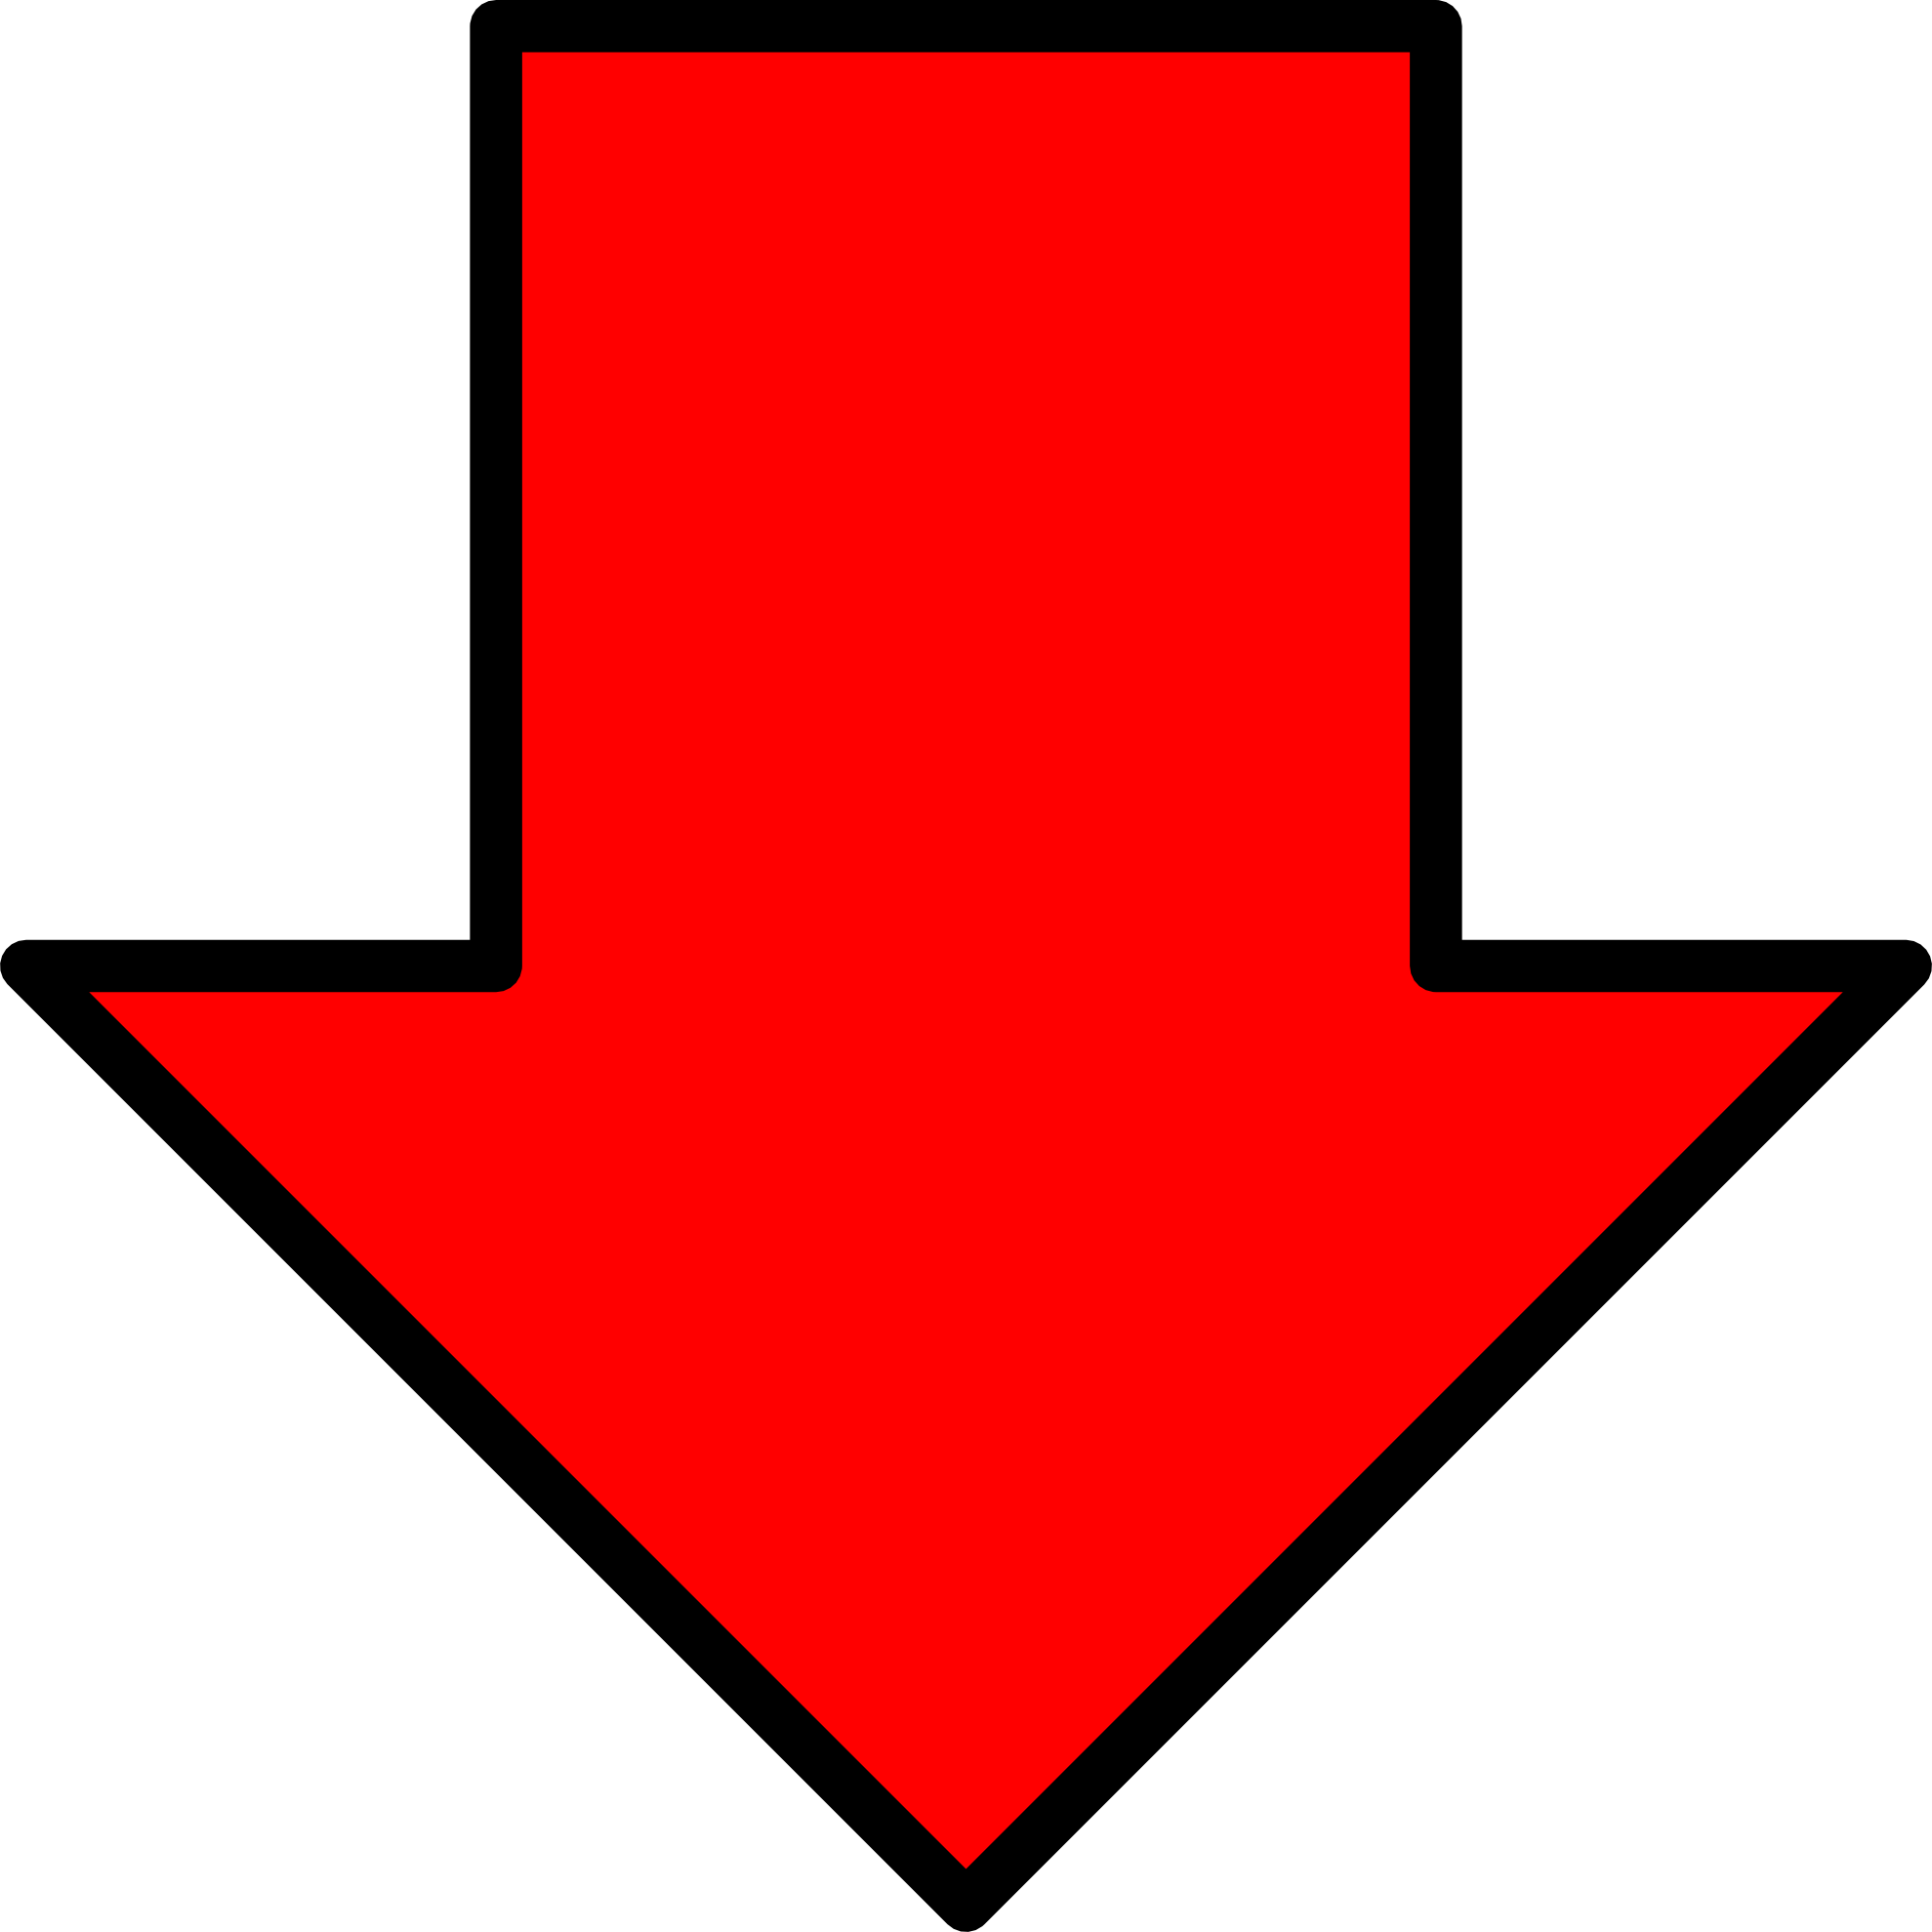 Red clipart kid down. Arrow cliparts